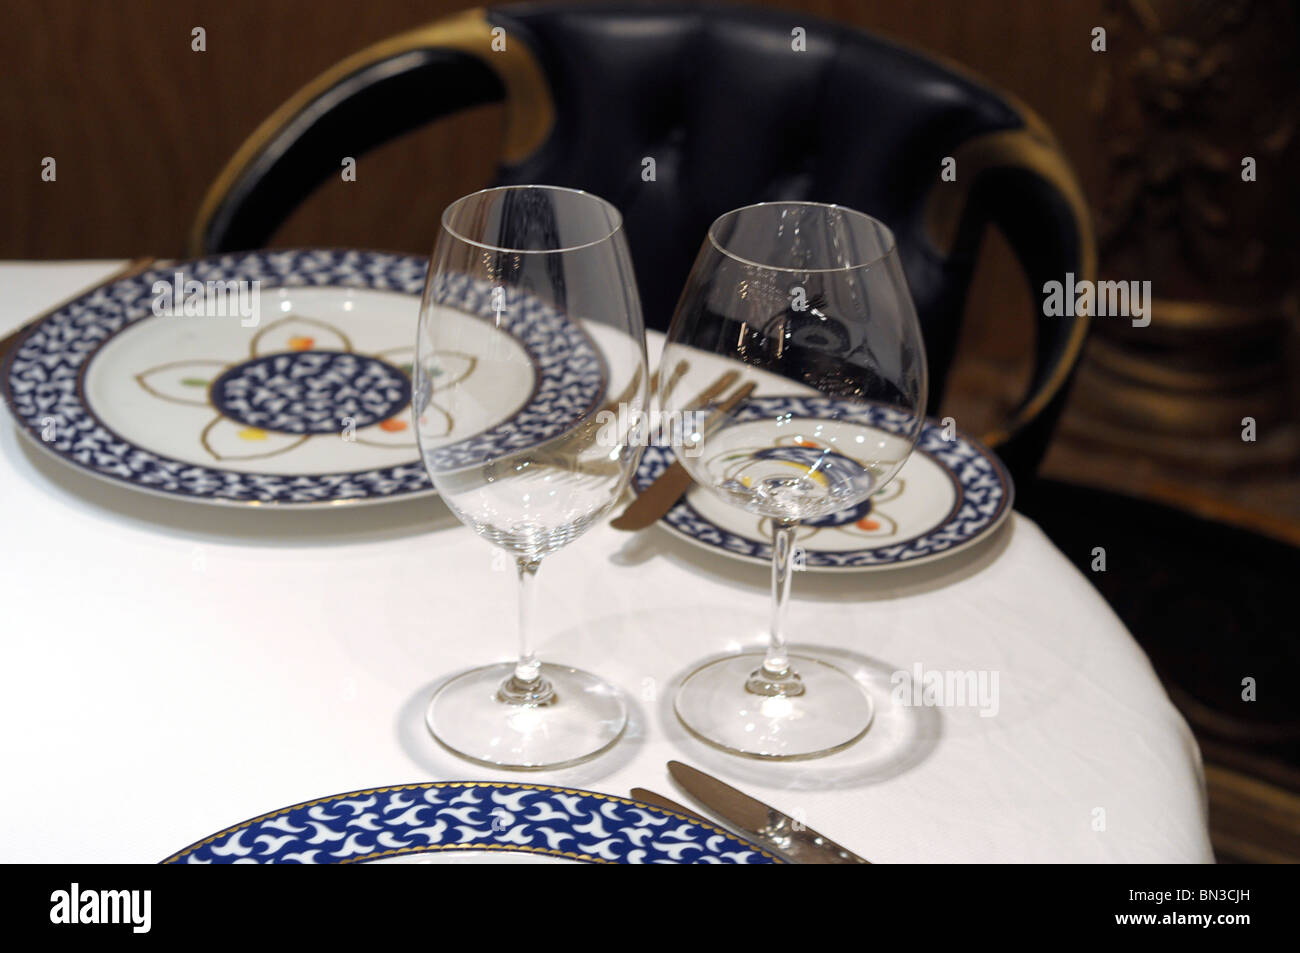 Empty Plates and Glasses, Place Setting - Stock Image